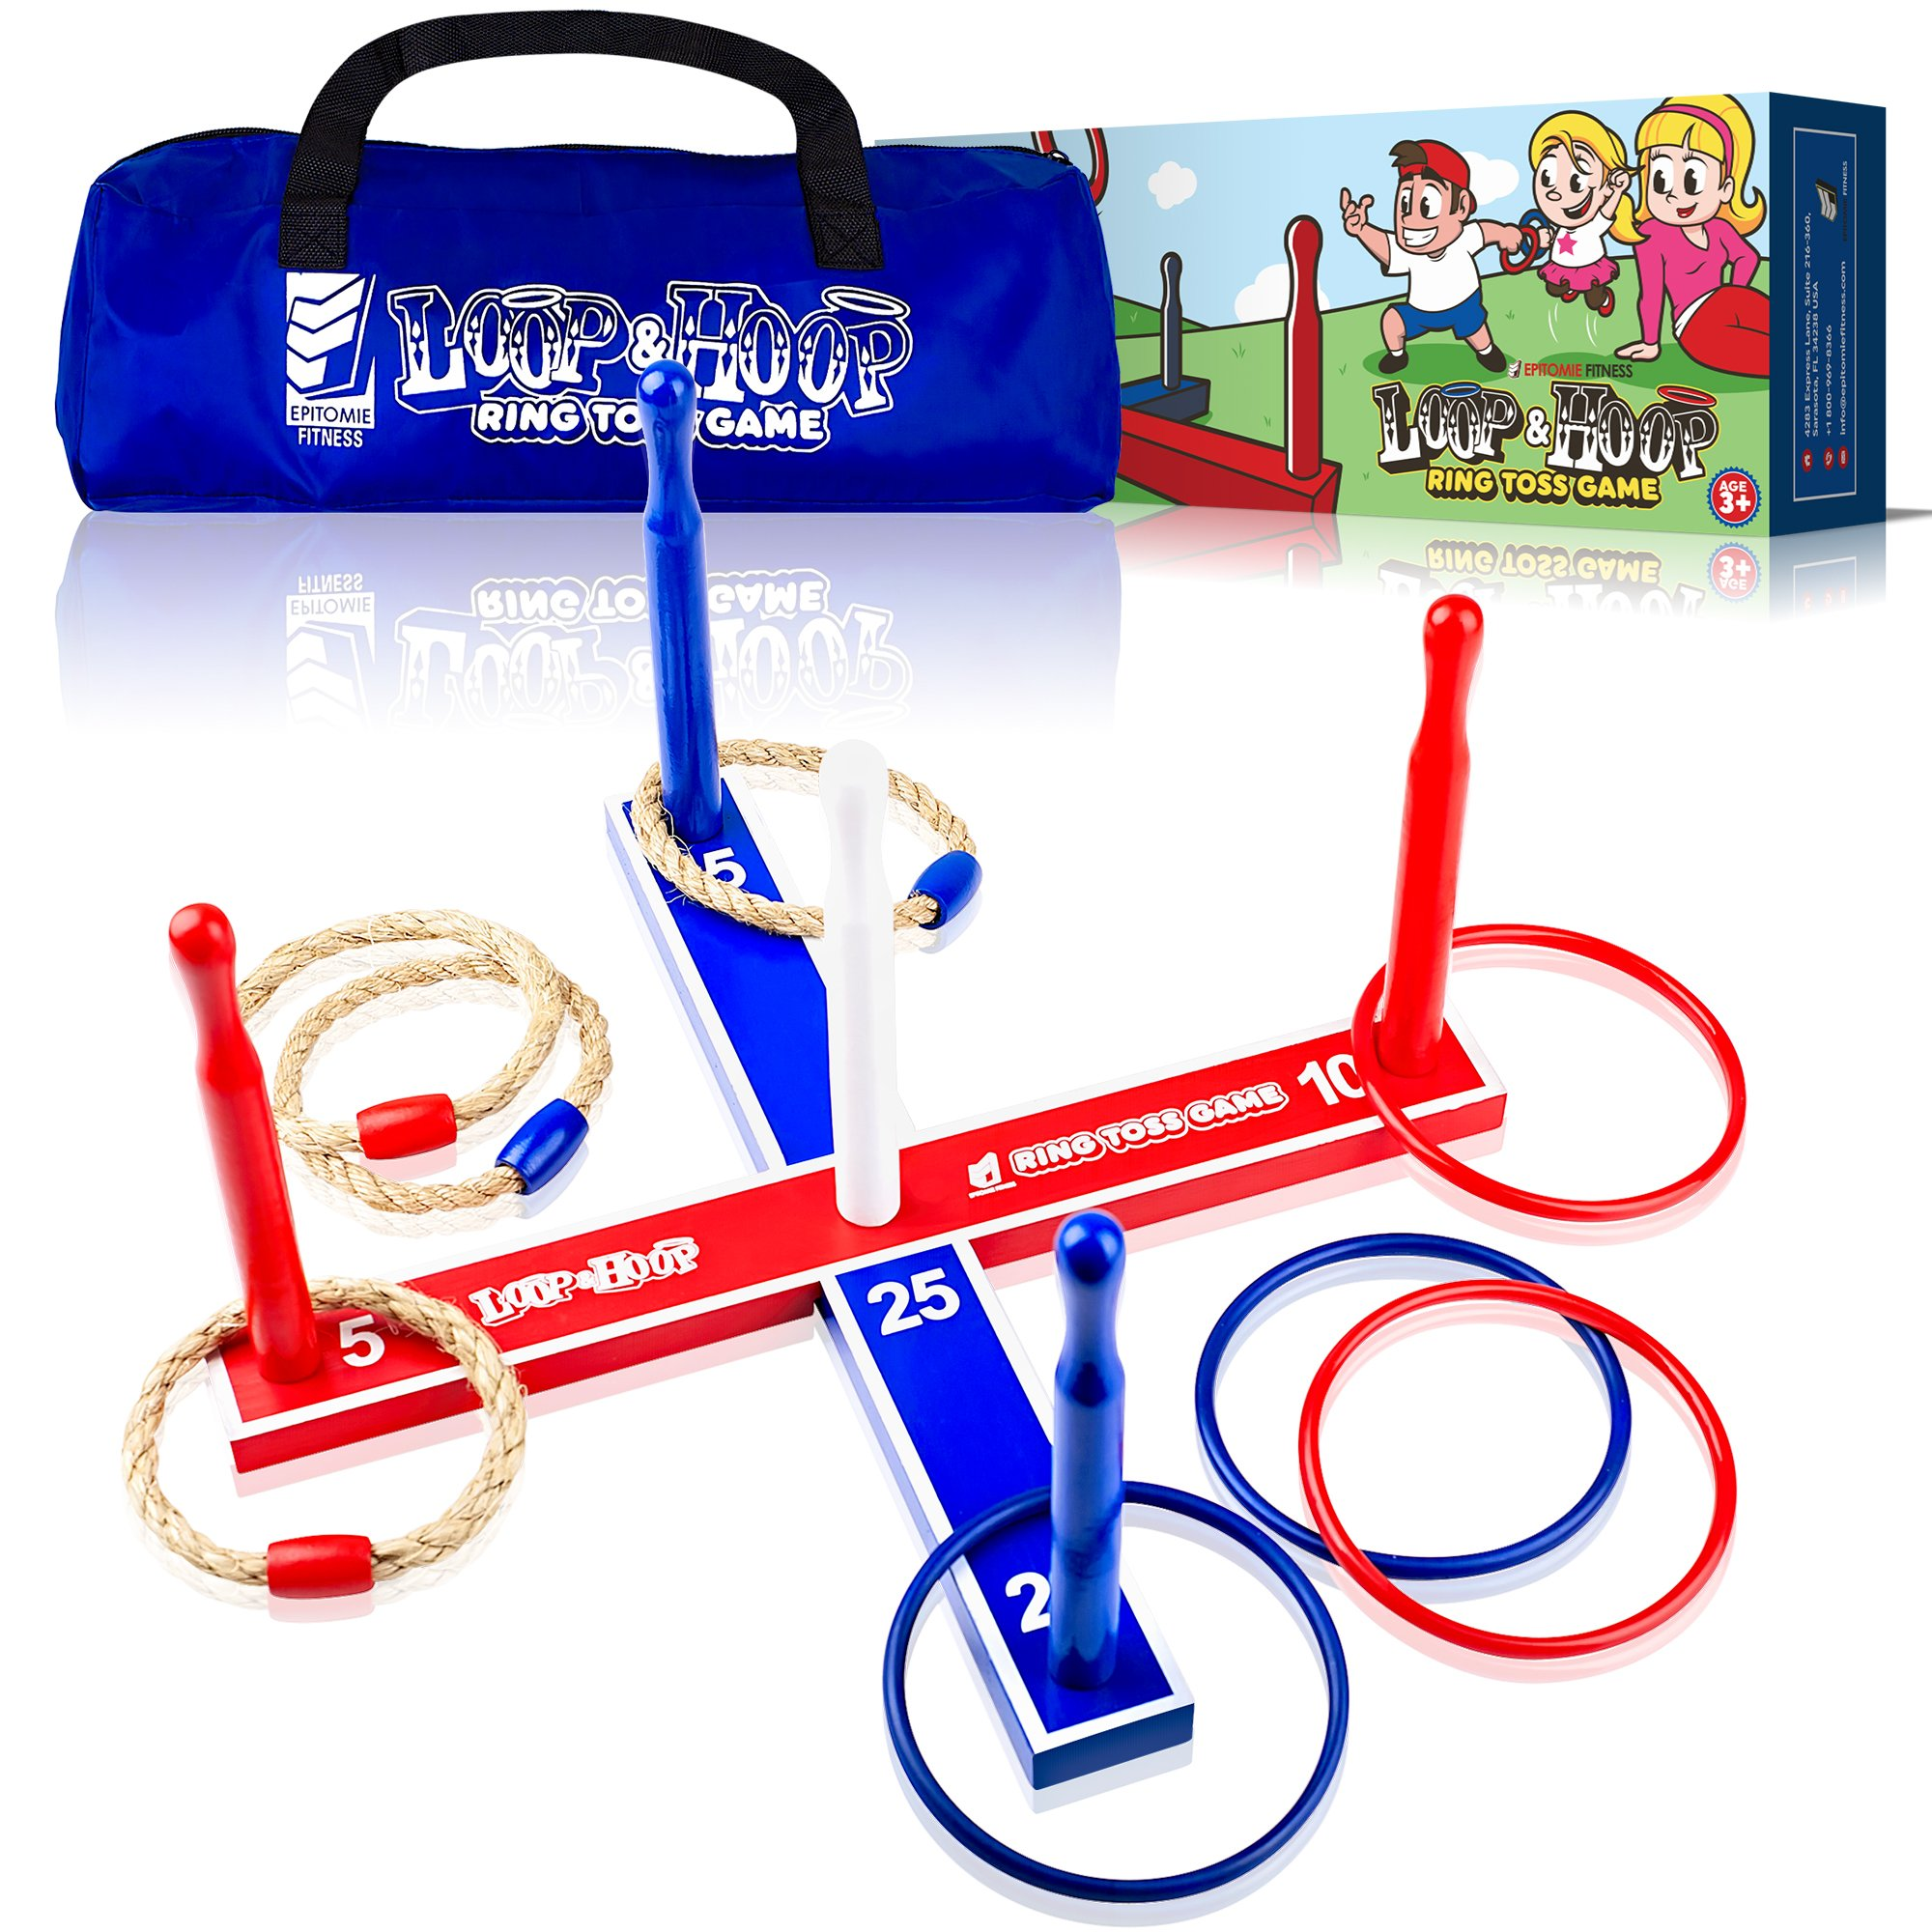 Epitomie Fitness Loop & Hoop Ring Toss Game (Premium) - Ring Toss Games Set With 4 Quoits Rope Rings, 4 Plastic Rings & Carry Bag (Indoor & Outdoor Family Fun) by Epitomie Fitness